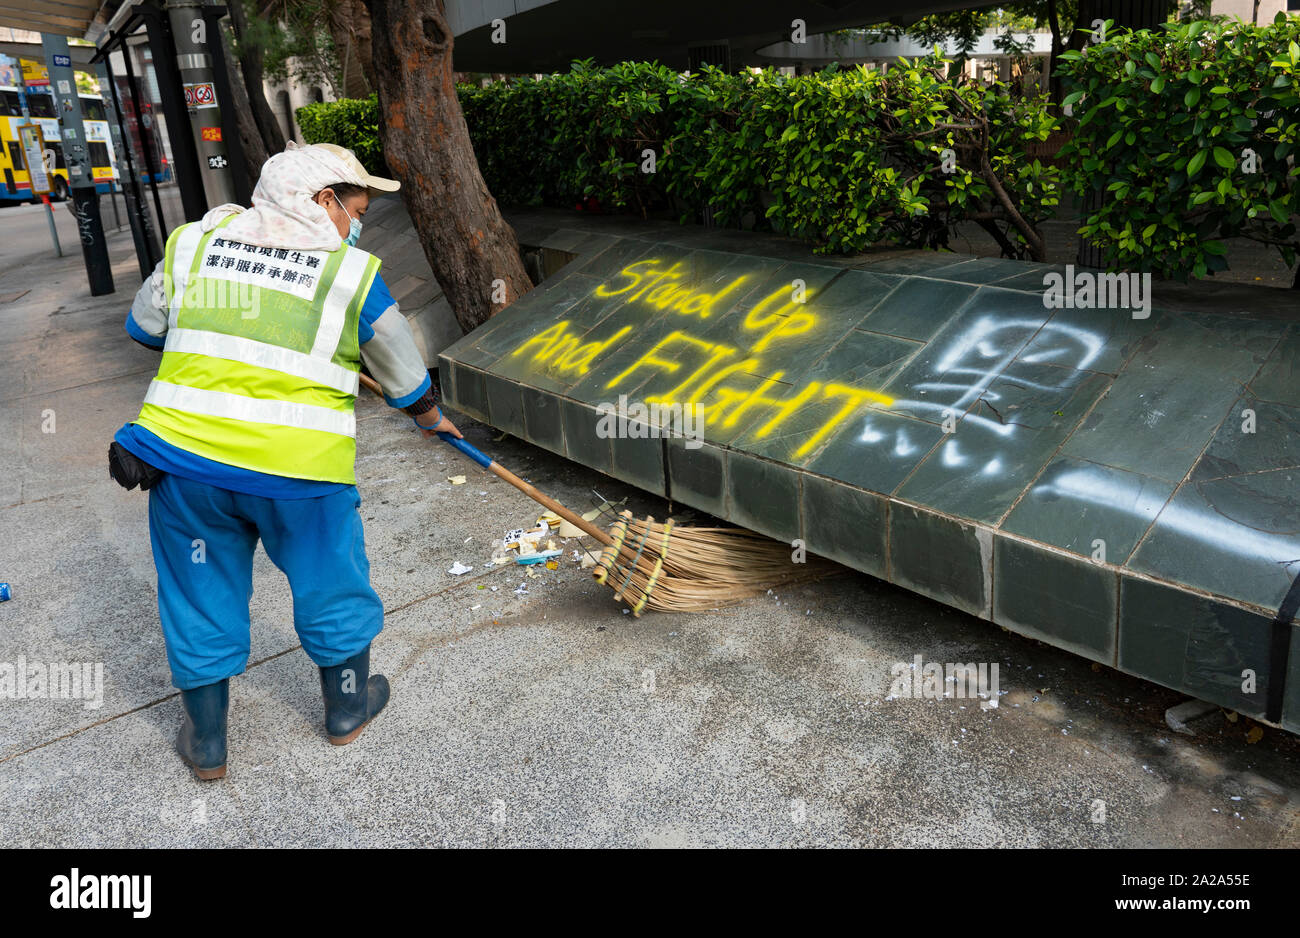 Hong Kong. 2 October 2019.  Many buildings and walls were vandalised and daubed with political slogans and anti-Chinese government and anti-police graffiti in Central and Wanchai districts by pro-democracy supporters on China's National Day on 1 October. Widespread clean-up operation is now underway. Iain Masterton/Alamy Live News. Stock Photo